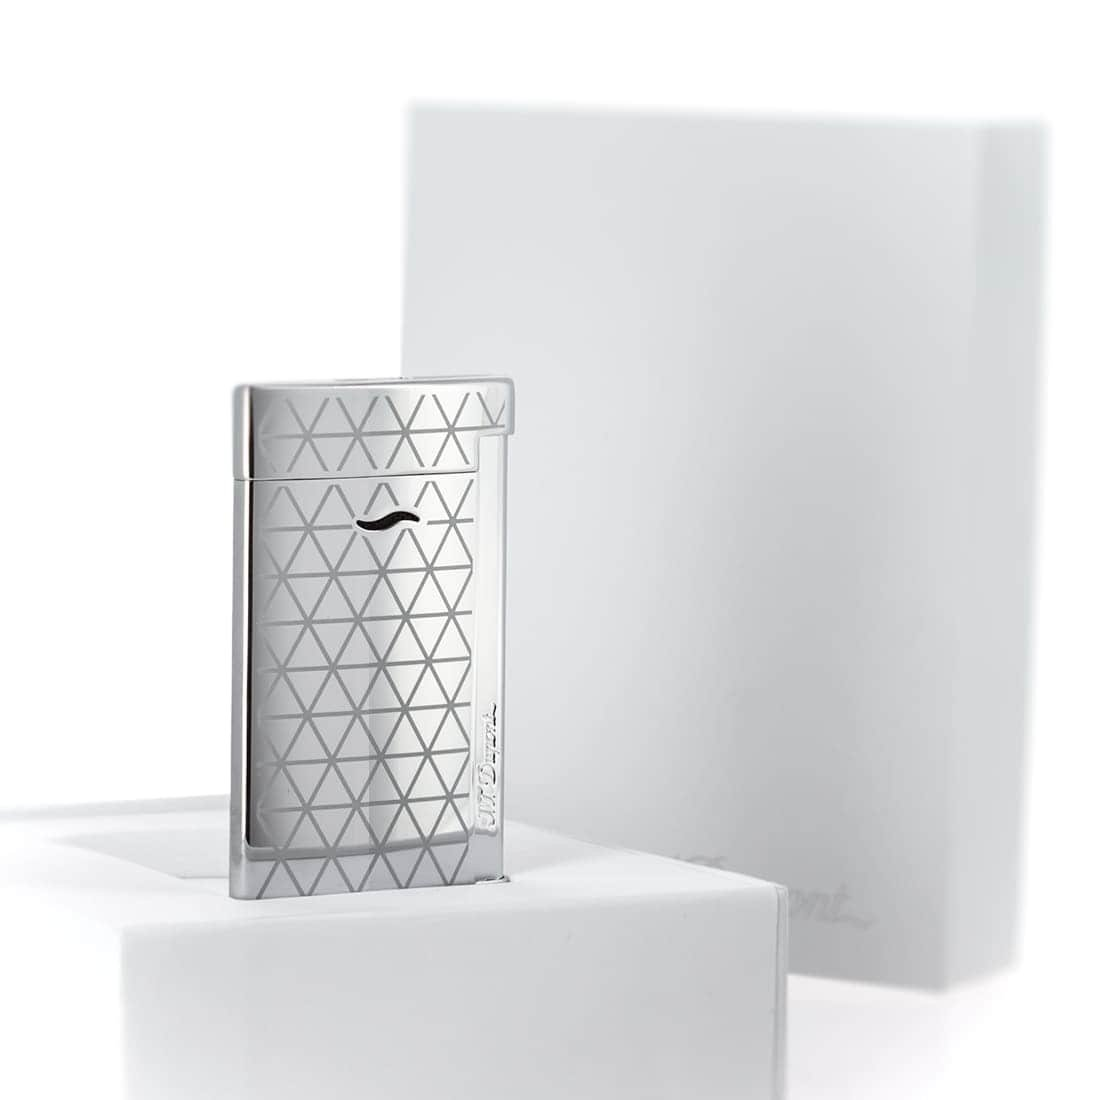 S.T. Dupont chrome firehead slim 7 lighter by S.T. Dupont (Image #2)